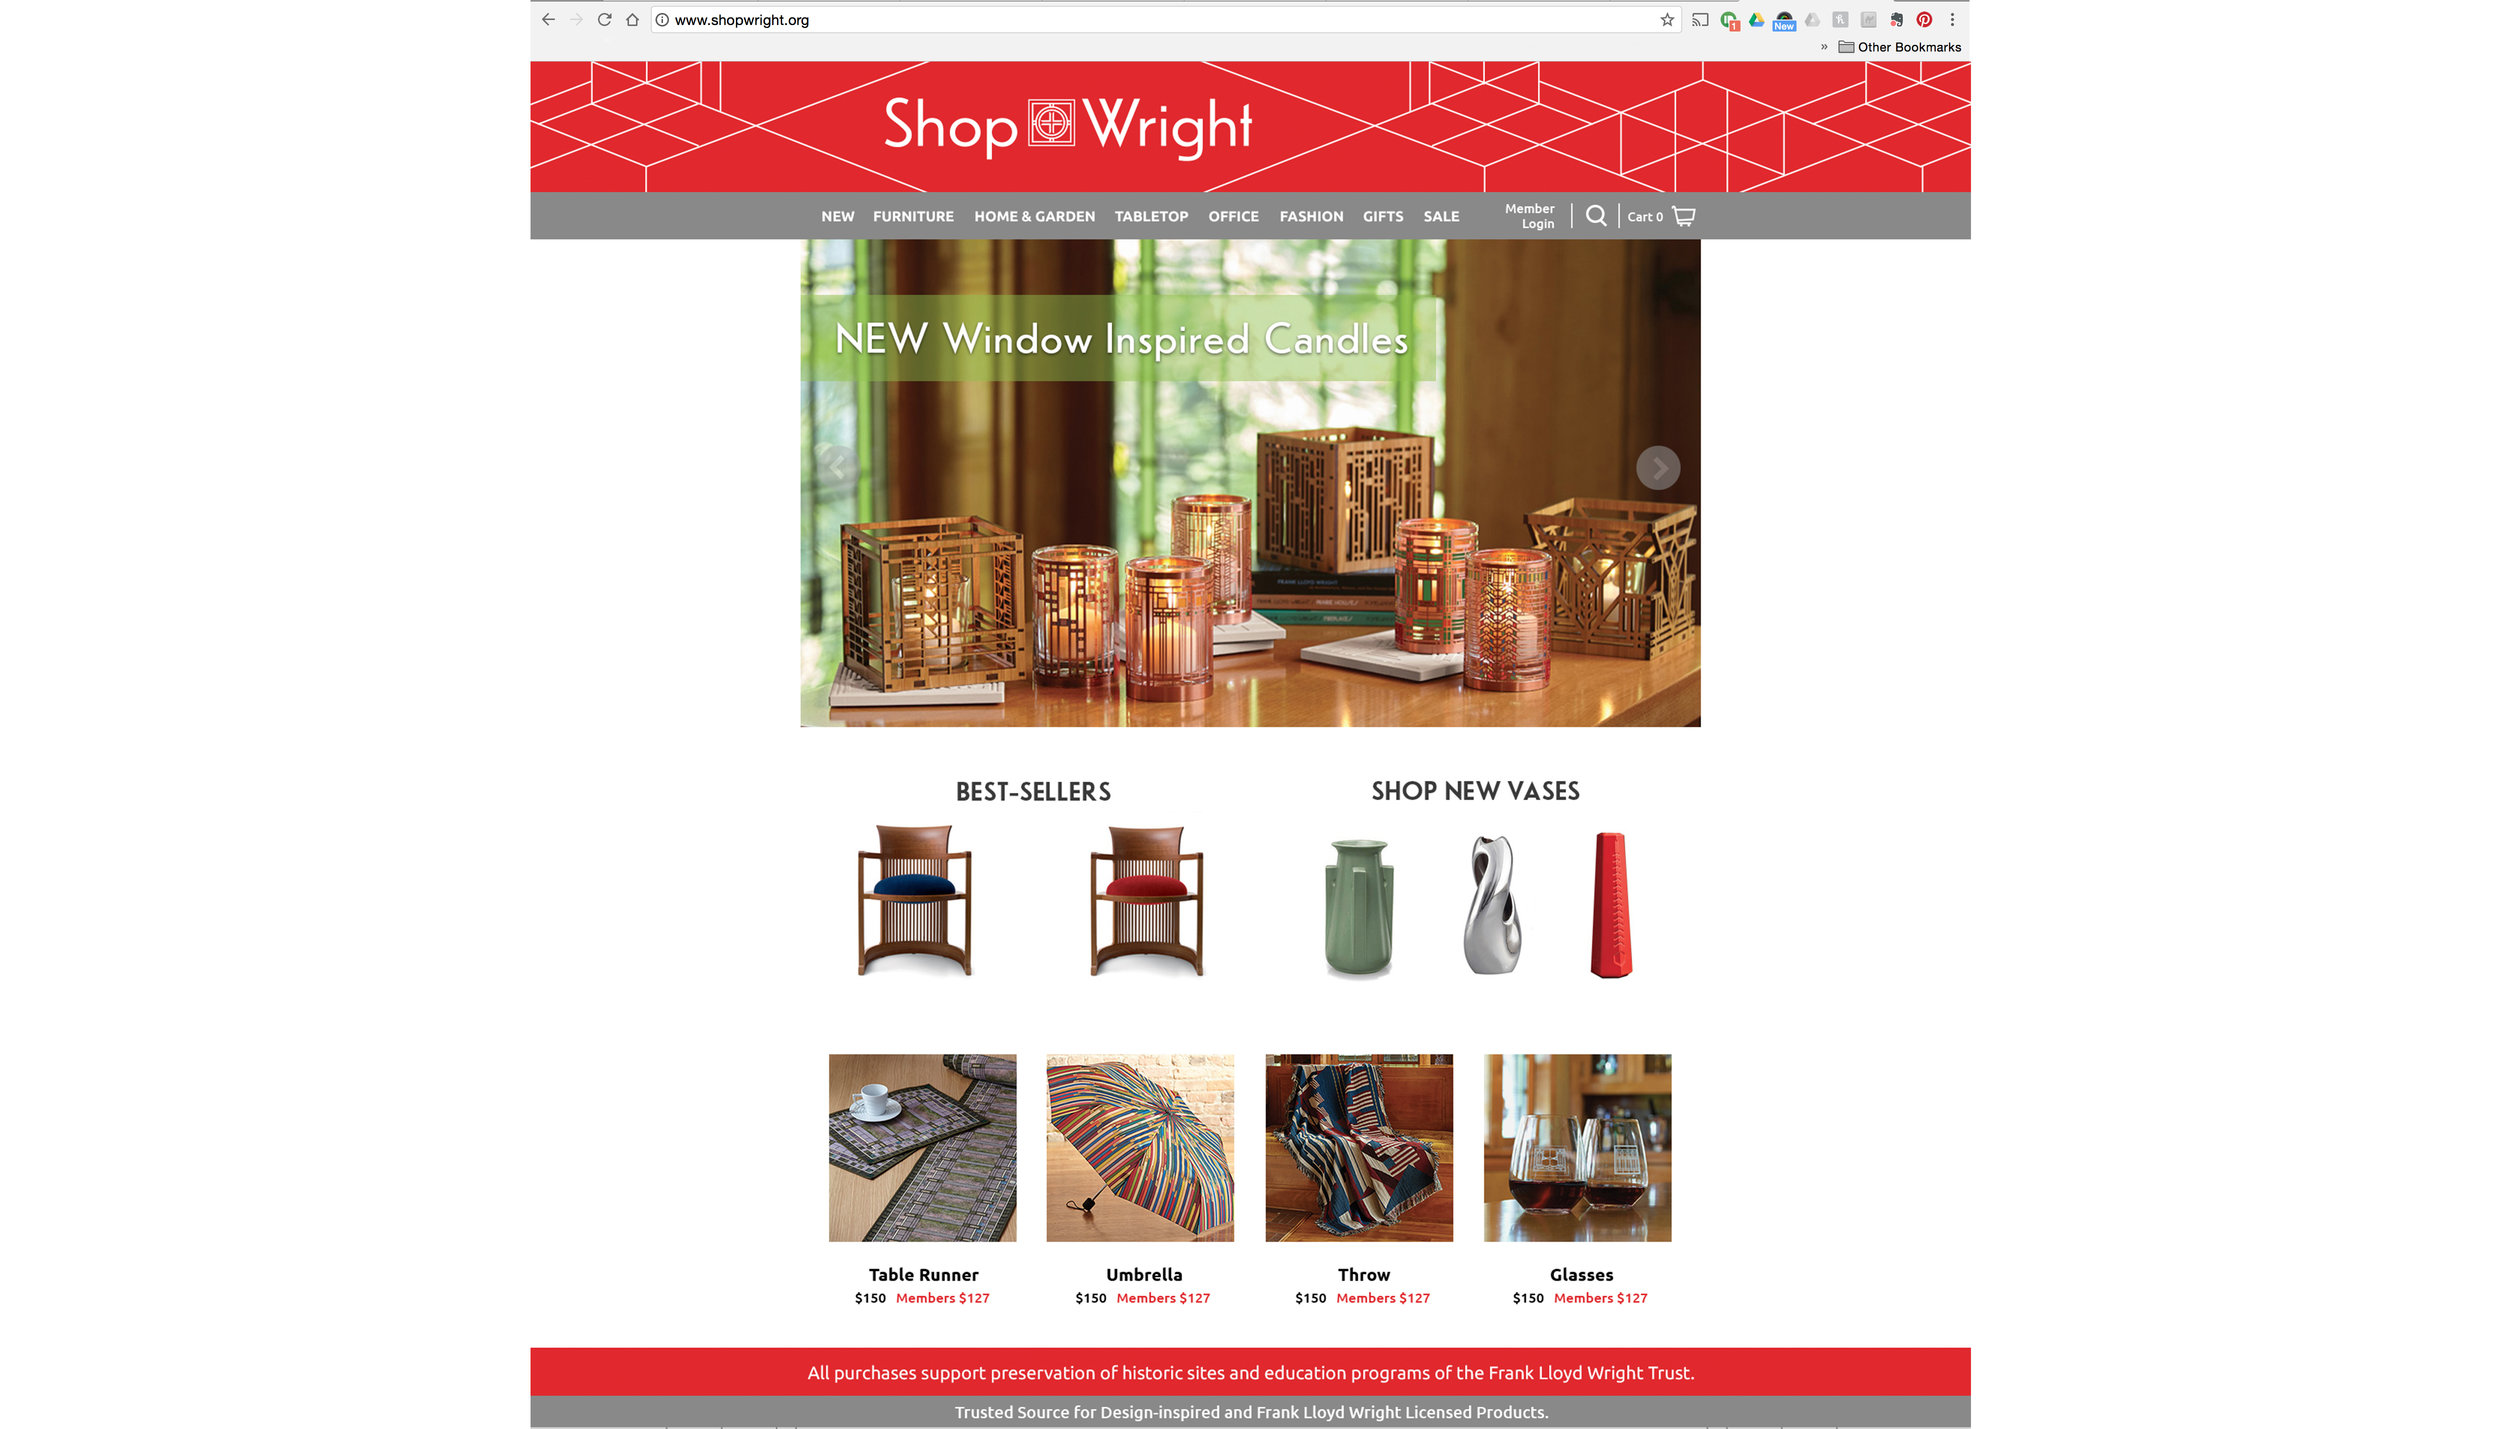 shopwright_home.jpg